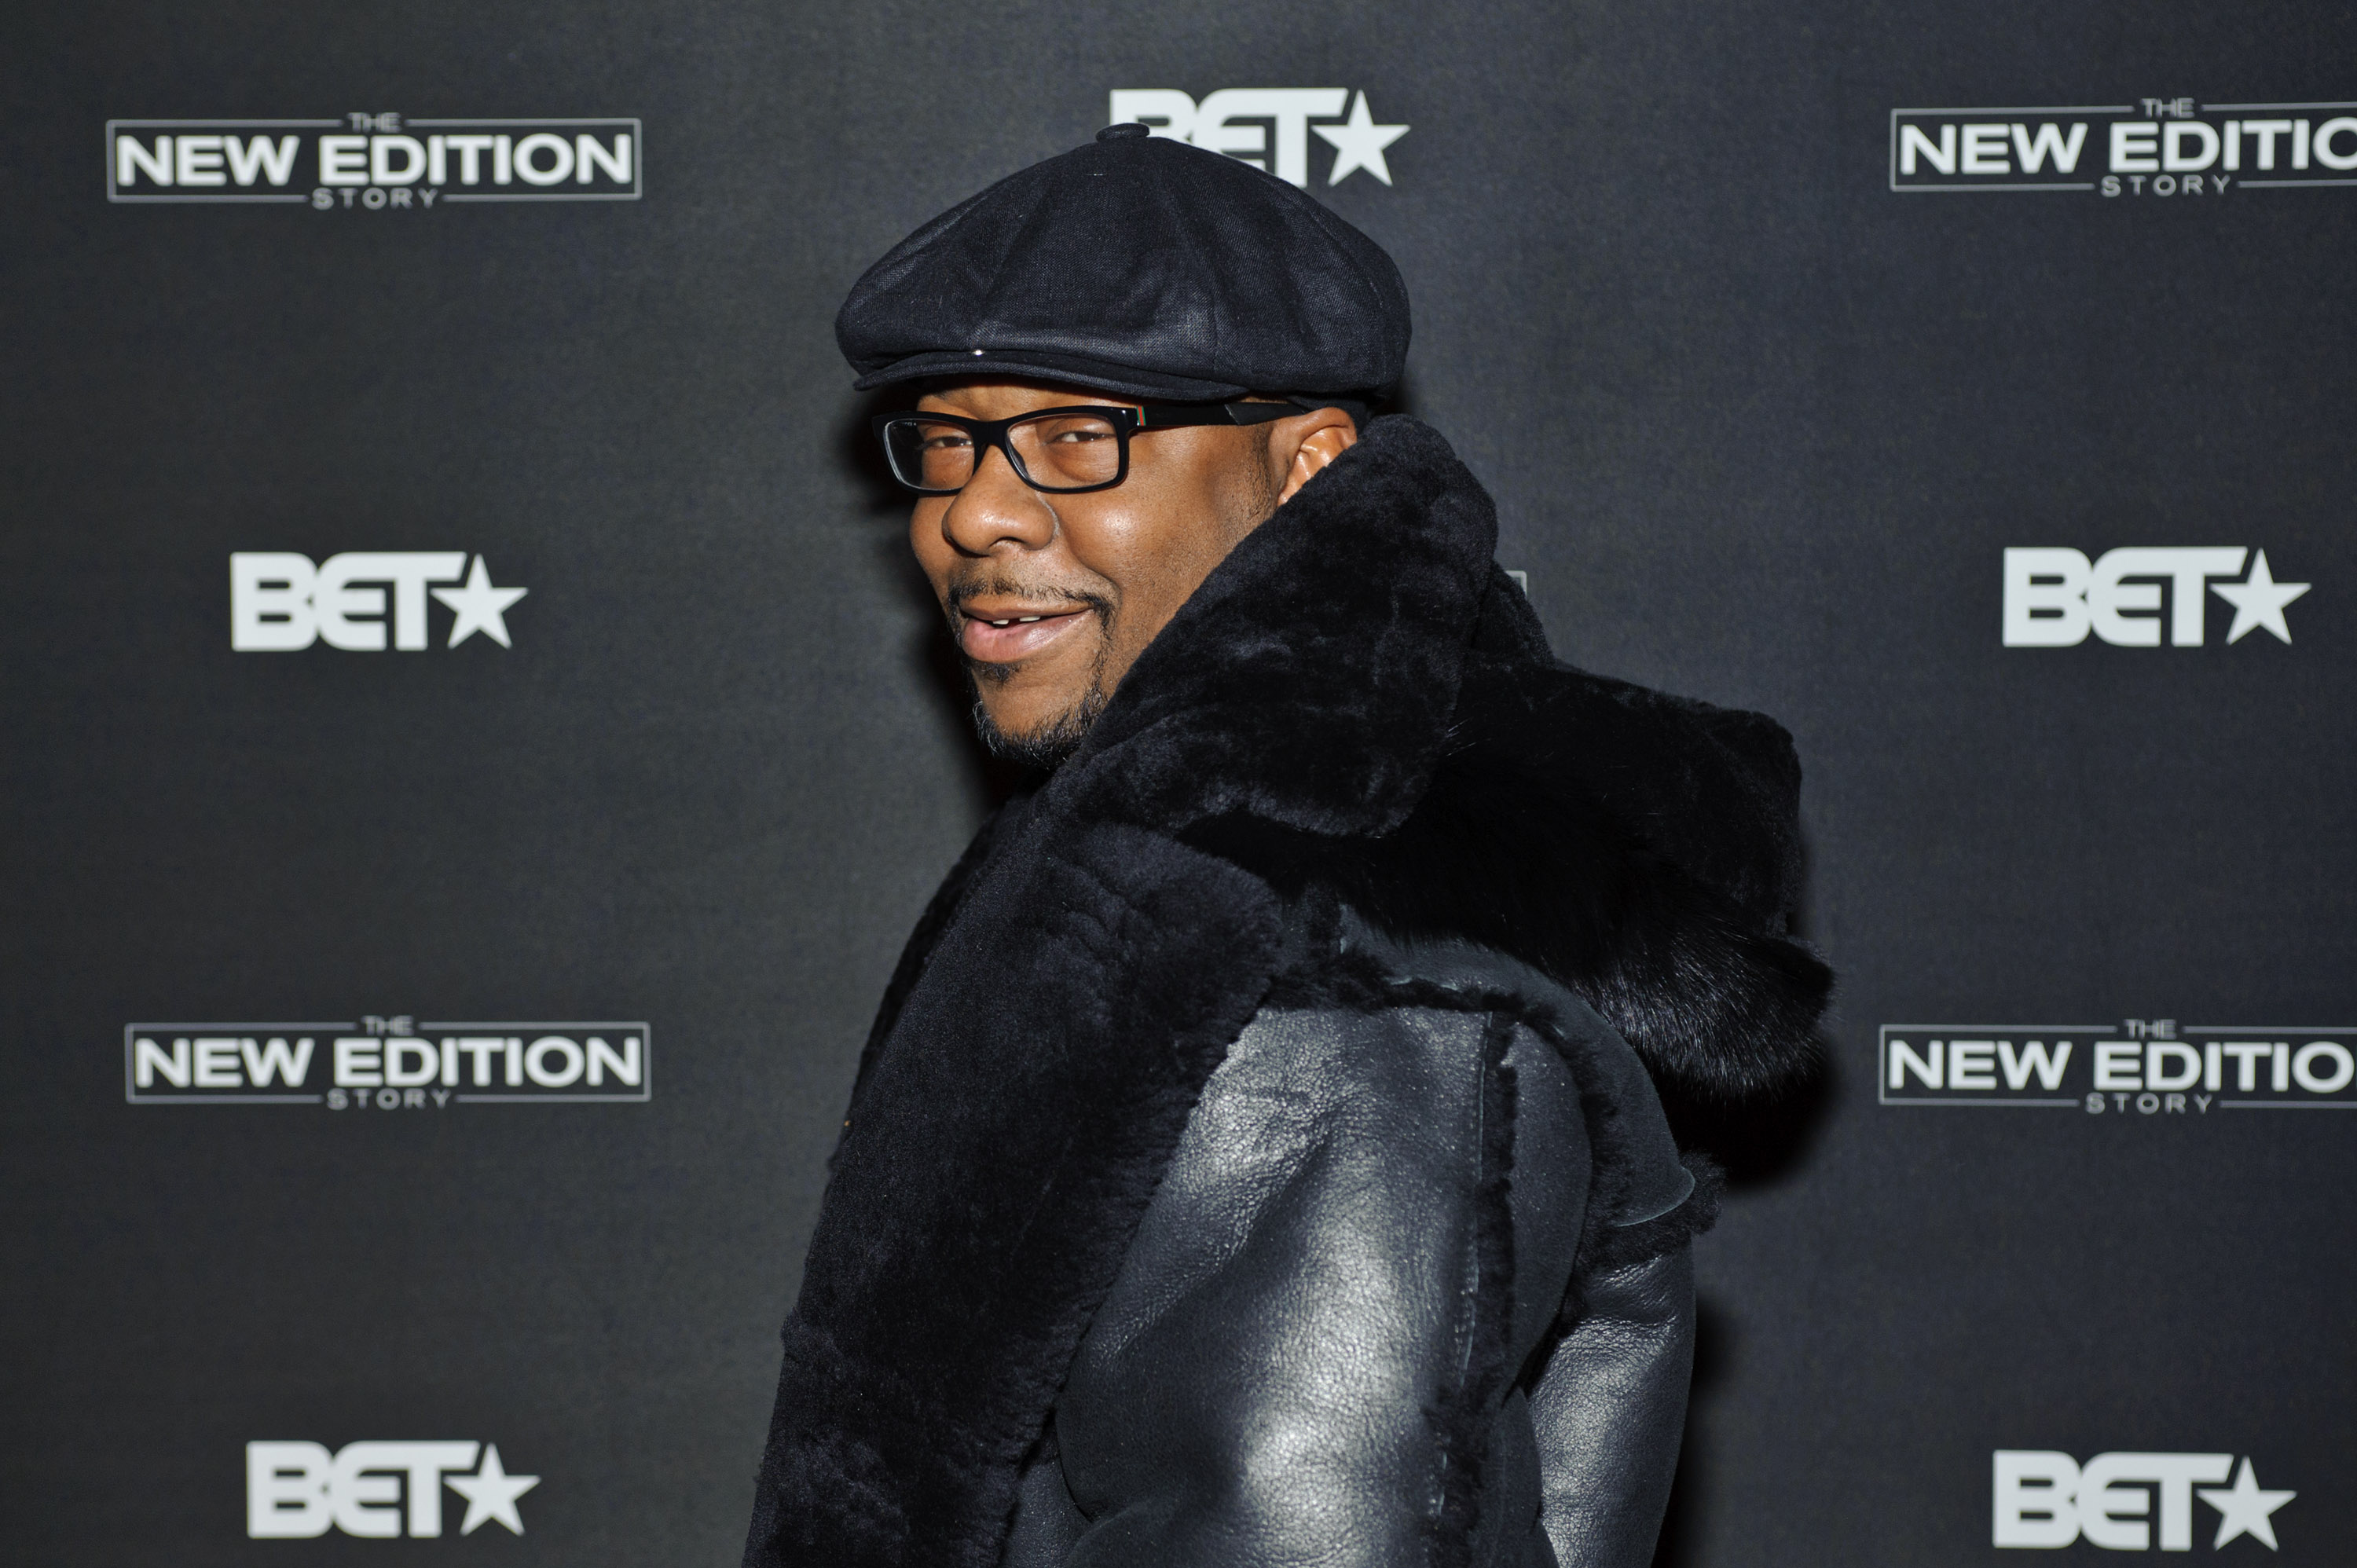 Bobby Brown Wants to 'Slap' Kanye West for Whitney Houston Photo